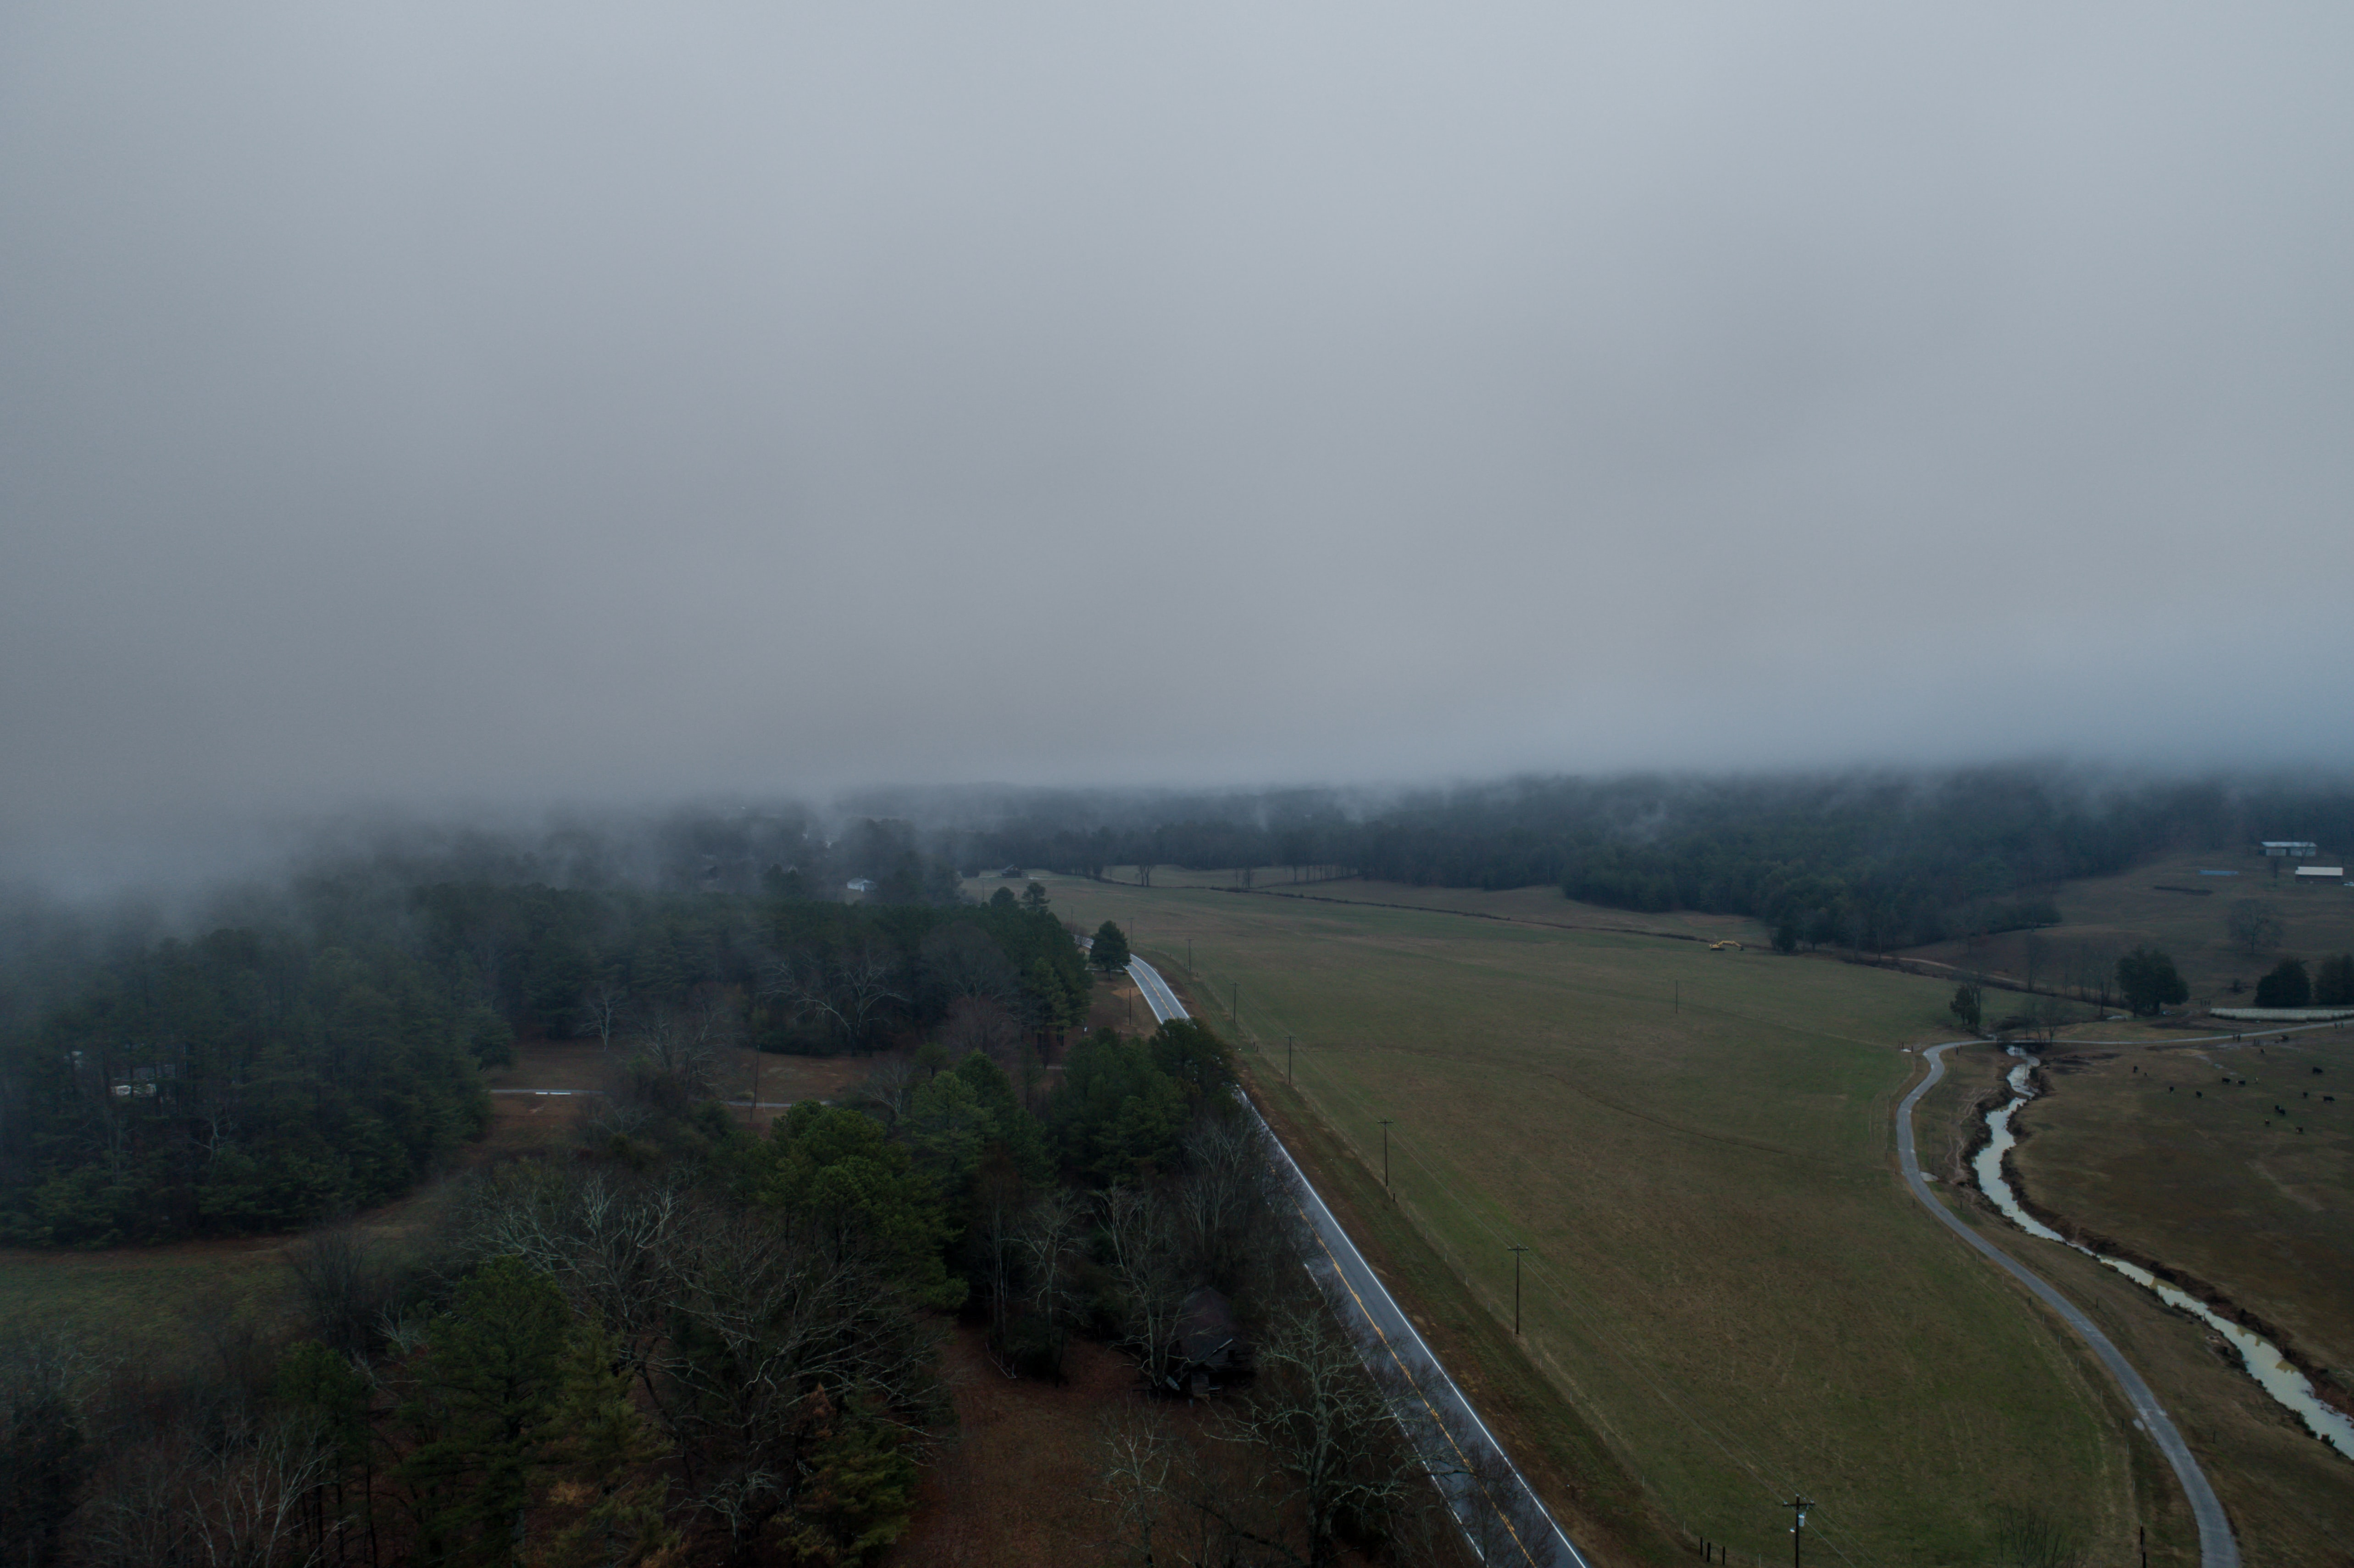 Aerial drone shot of rural fields and trees on a foggy day